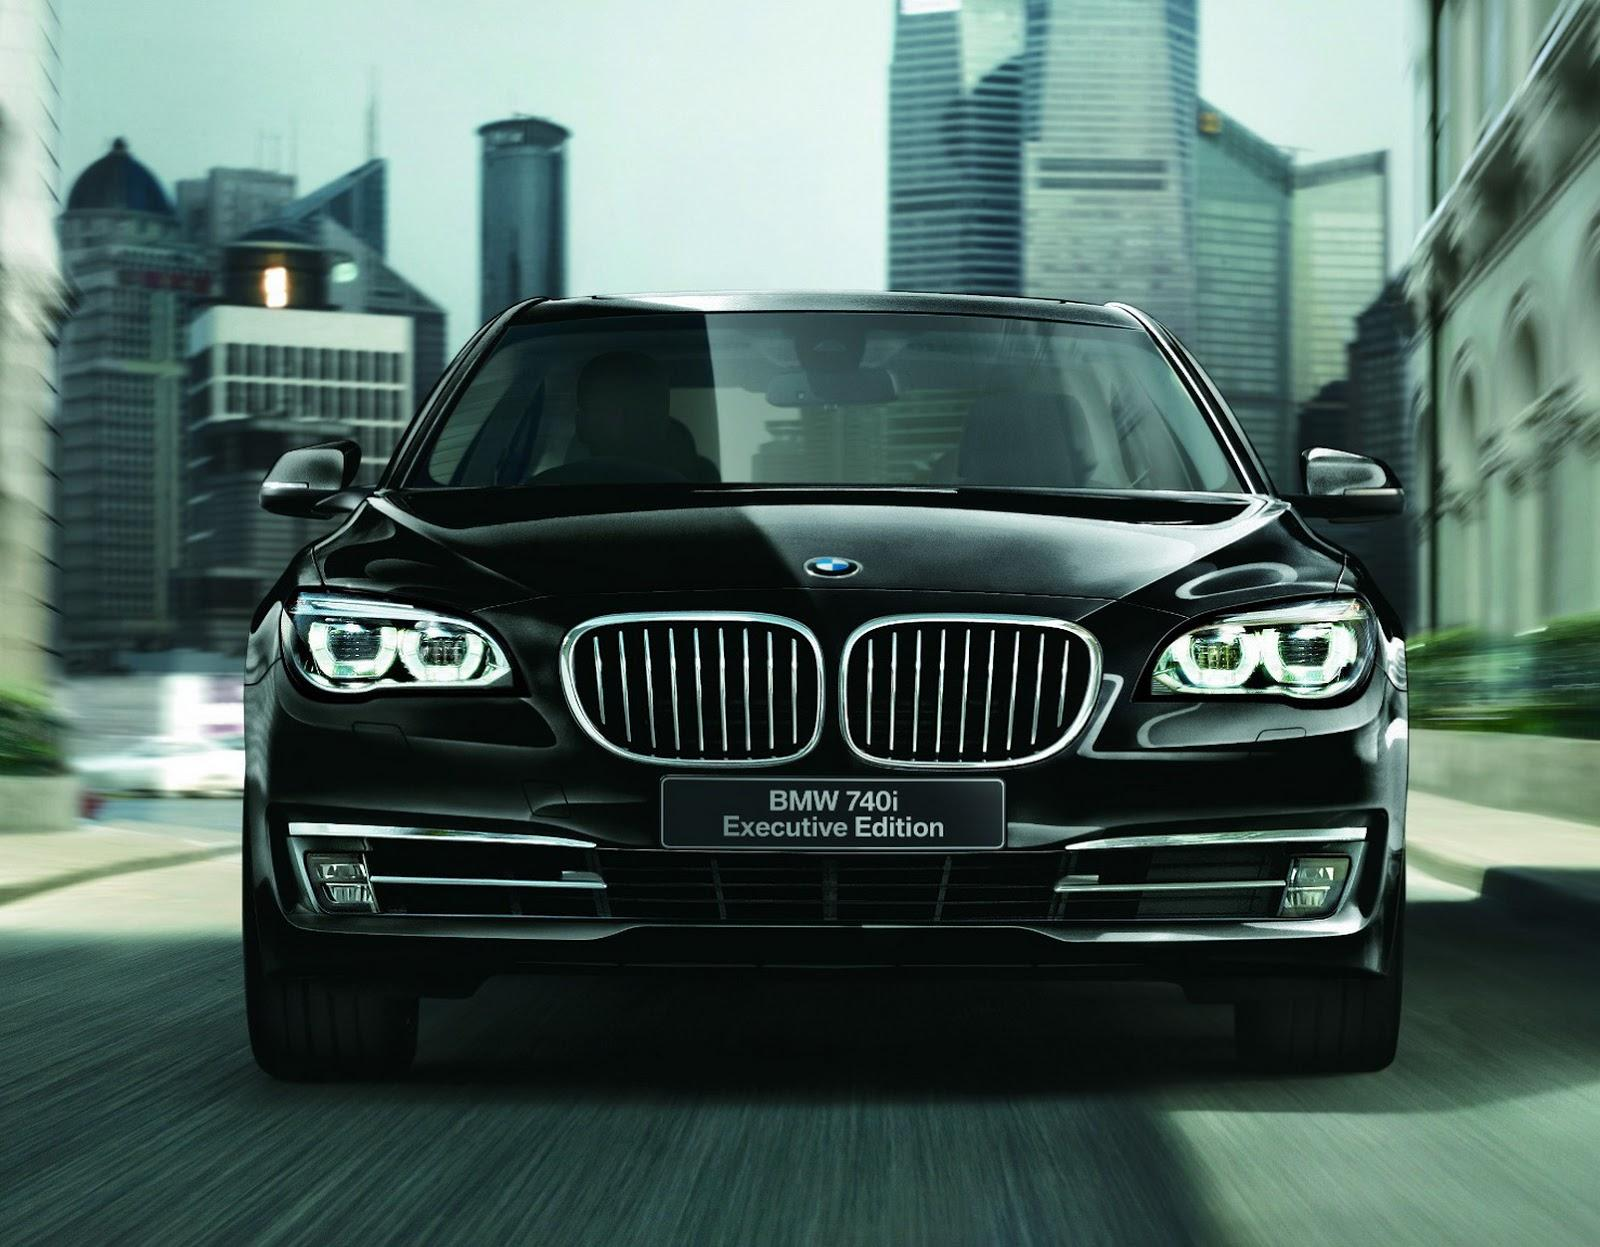 Bmw Launches 740i Executive Edition Model In Japan